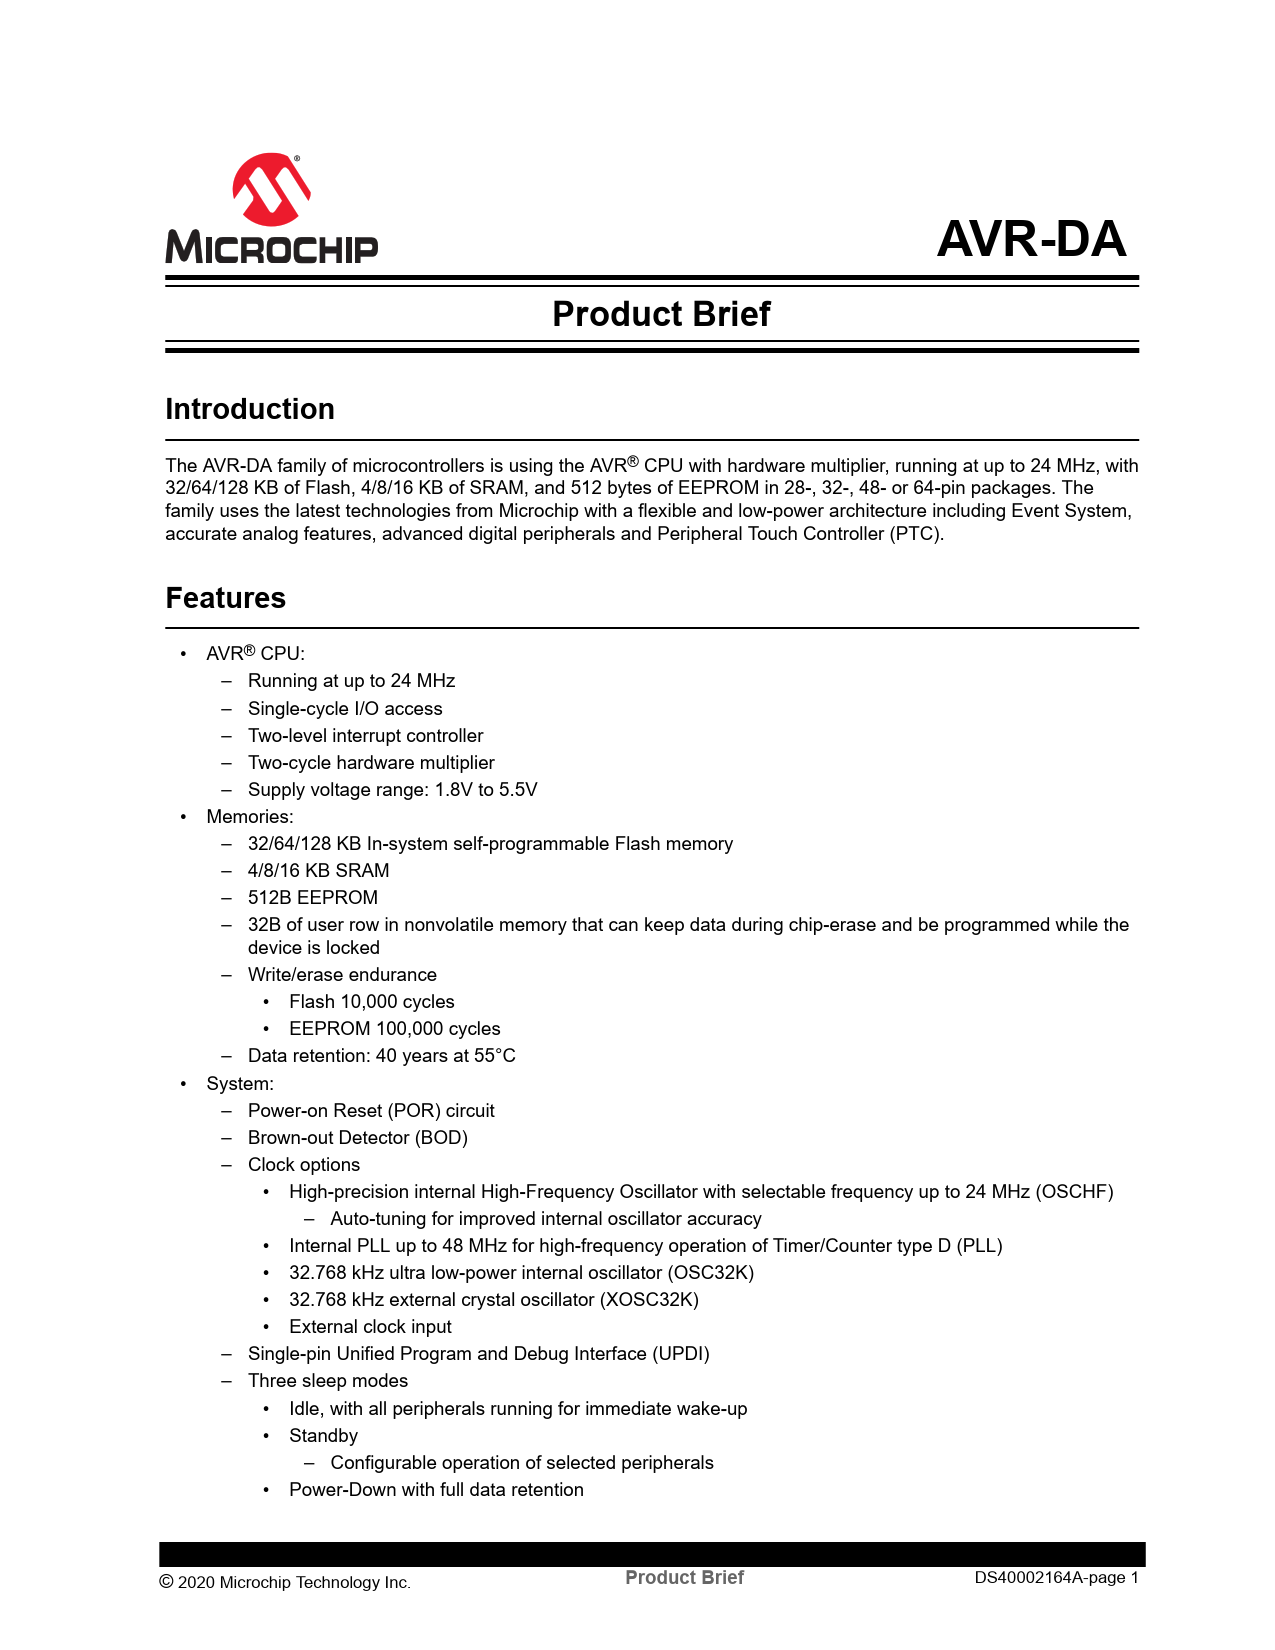 Product Brief AVR-DA Microchip